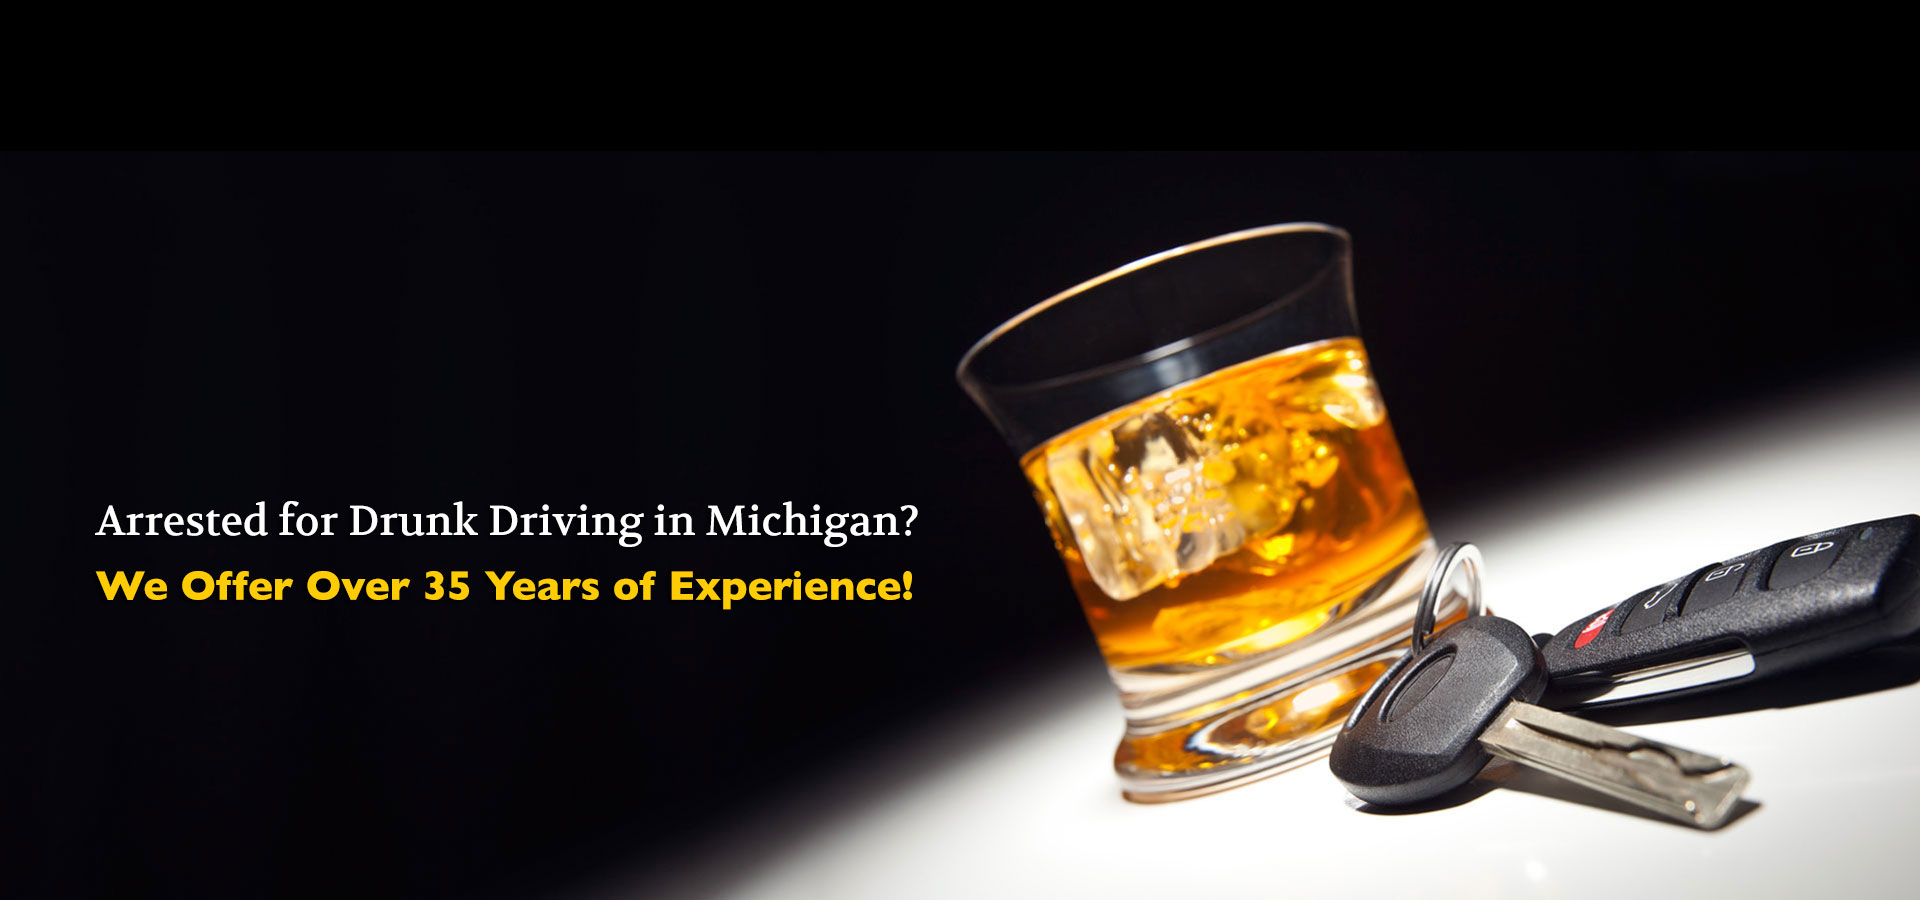 Royal Oak Charter Township DUI Attorney